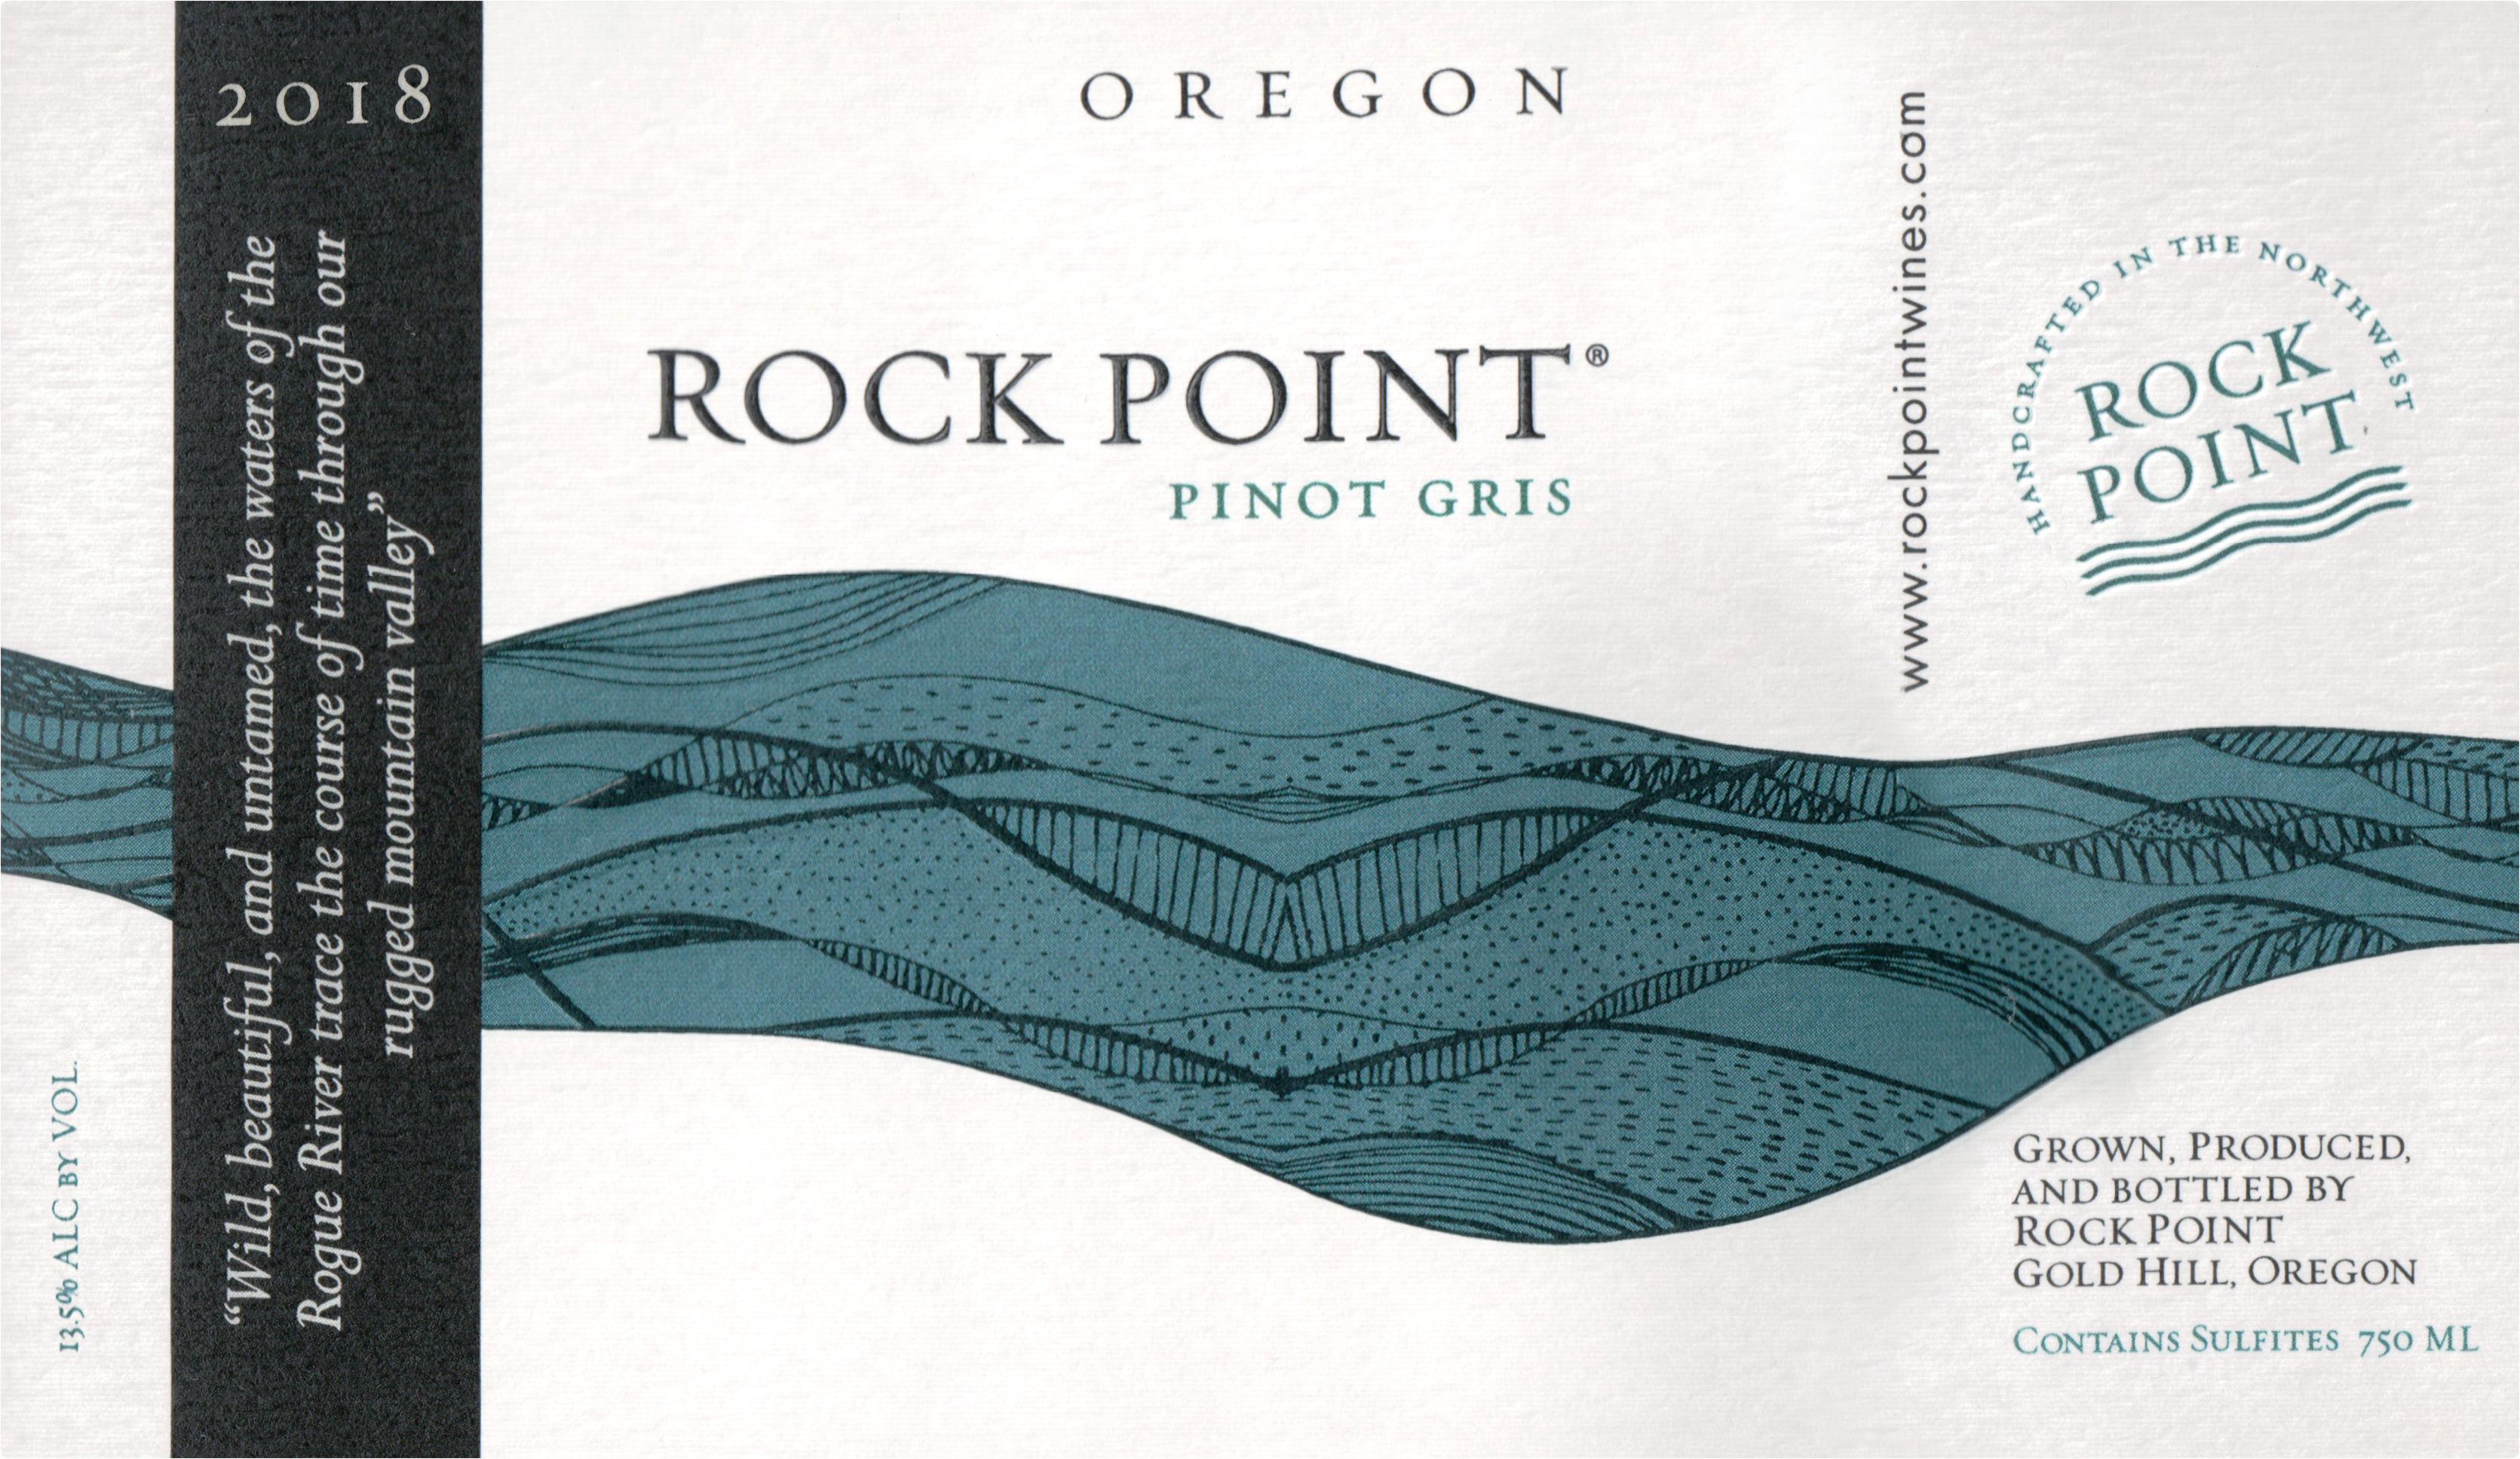 Rock Point Pinot Gris Rogue Valley 2018